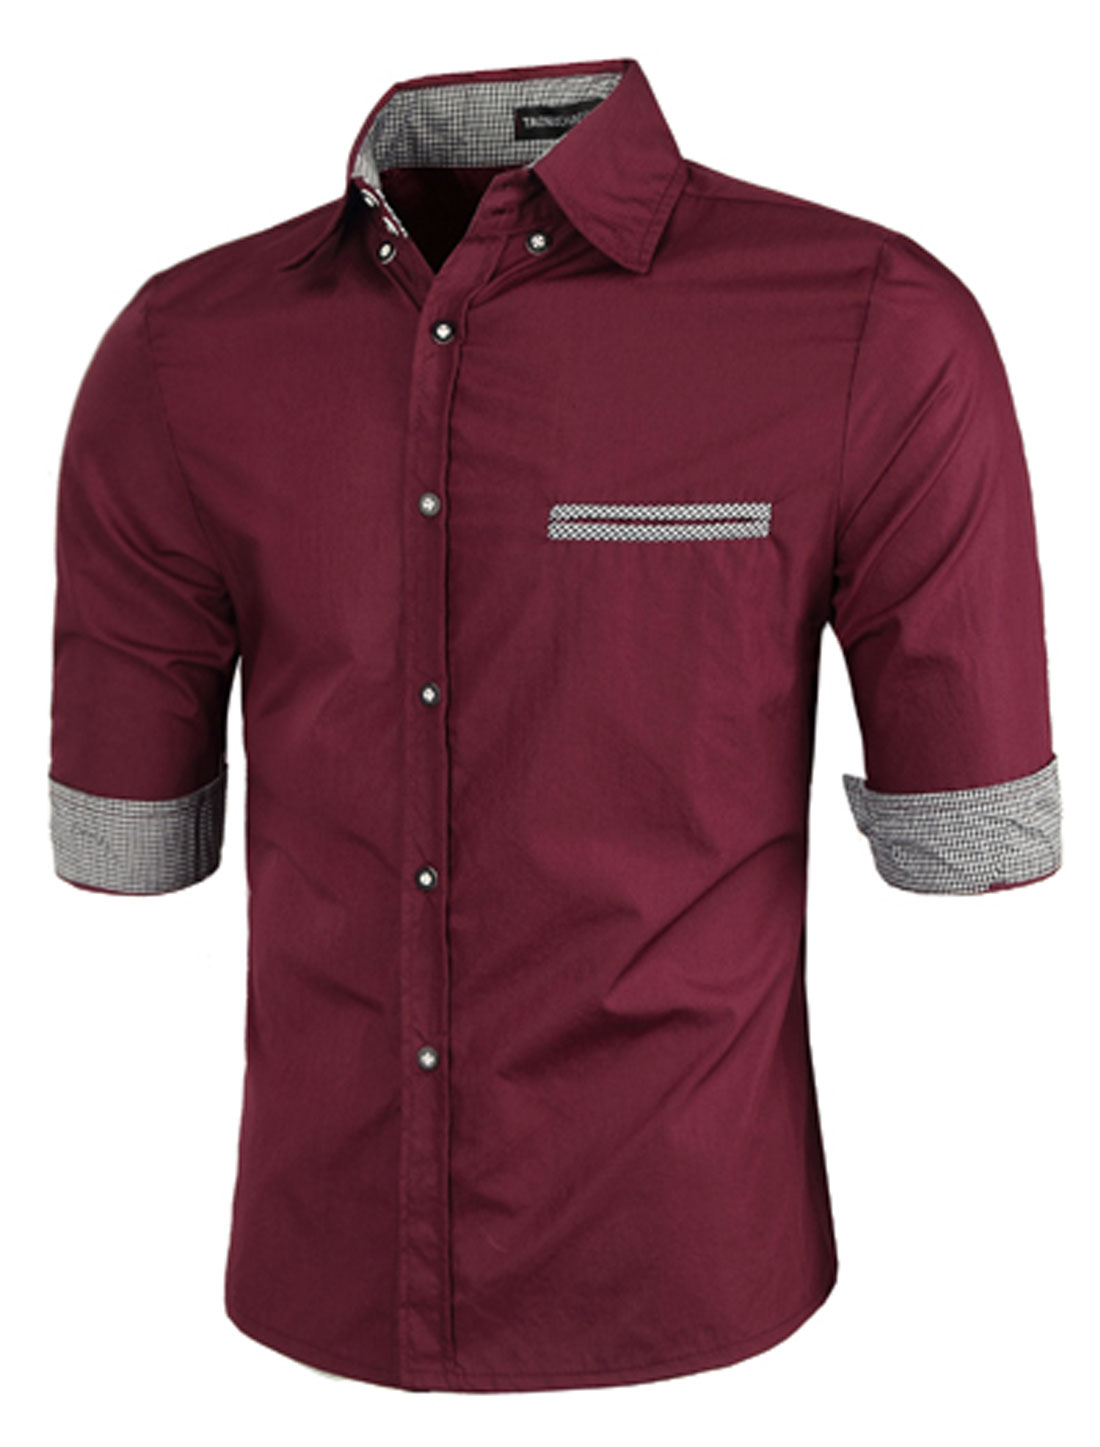 Men Fashion Roll-up Cuffs Half Sleeves Burgundy Casual Shirts M